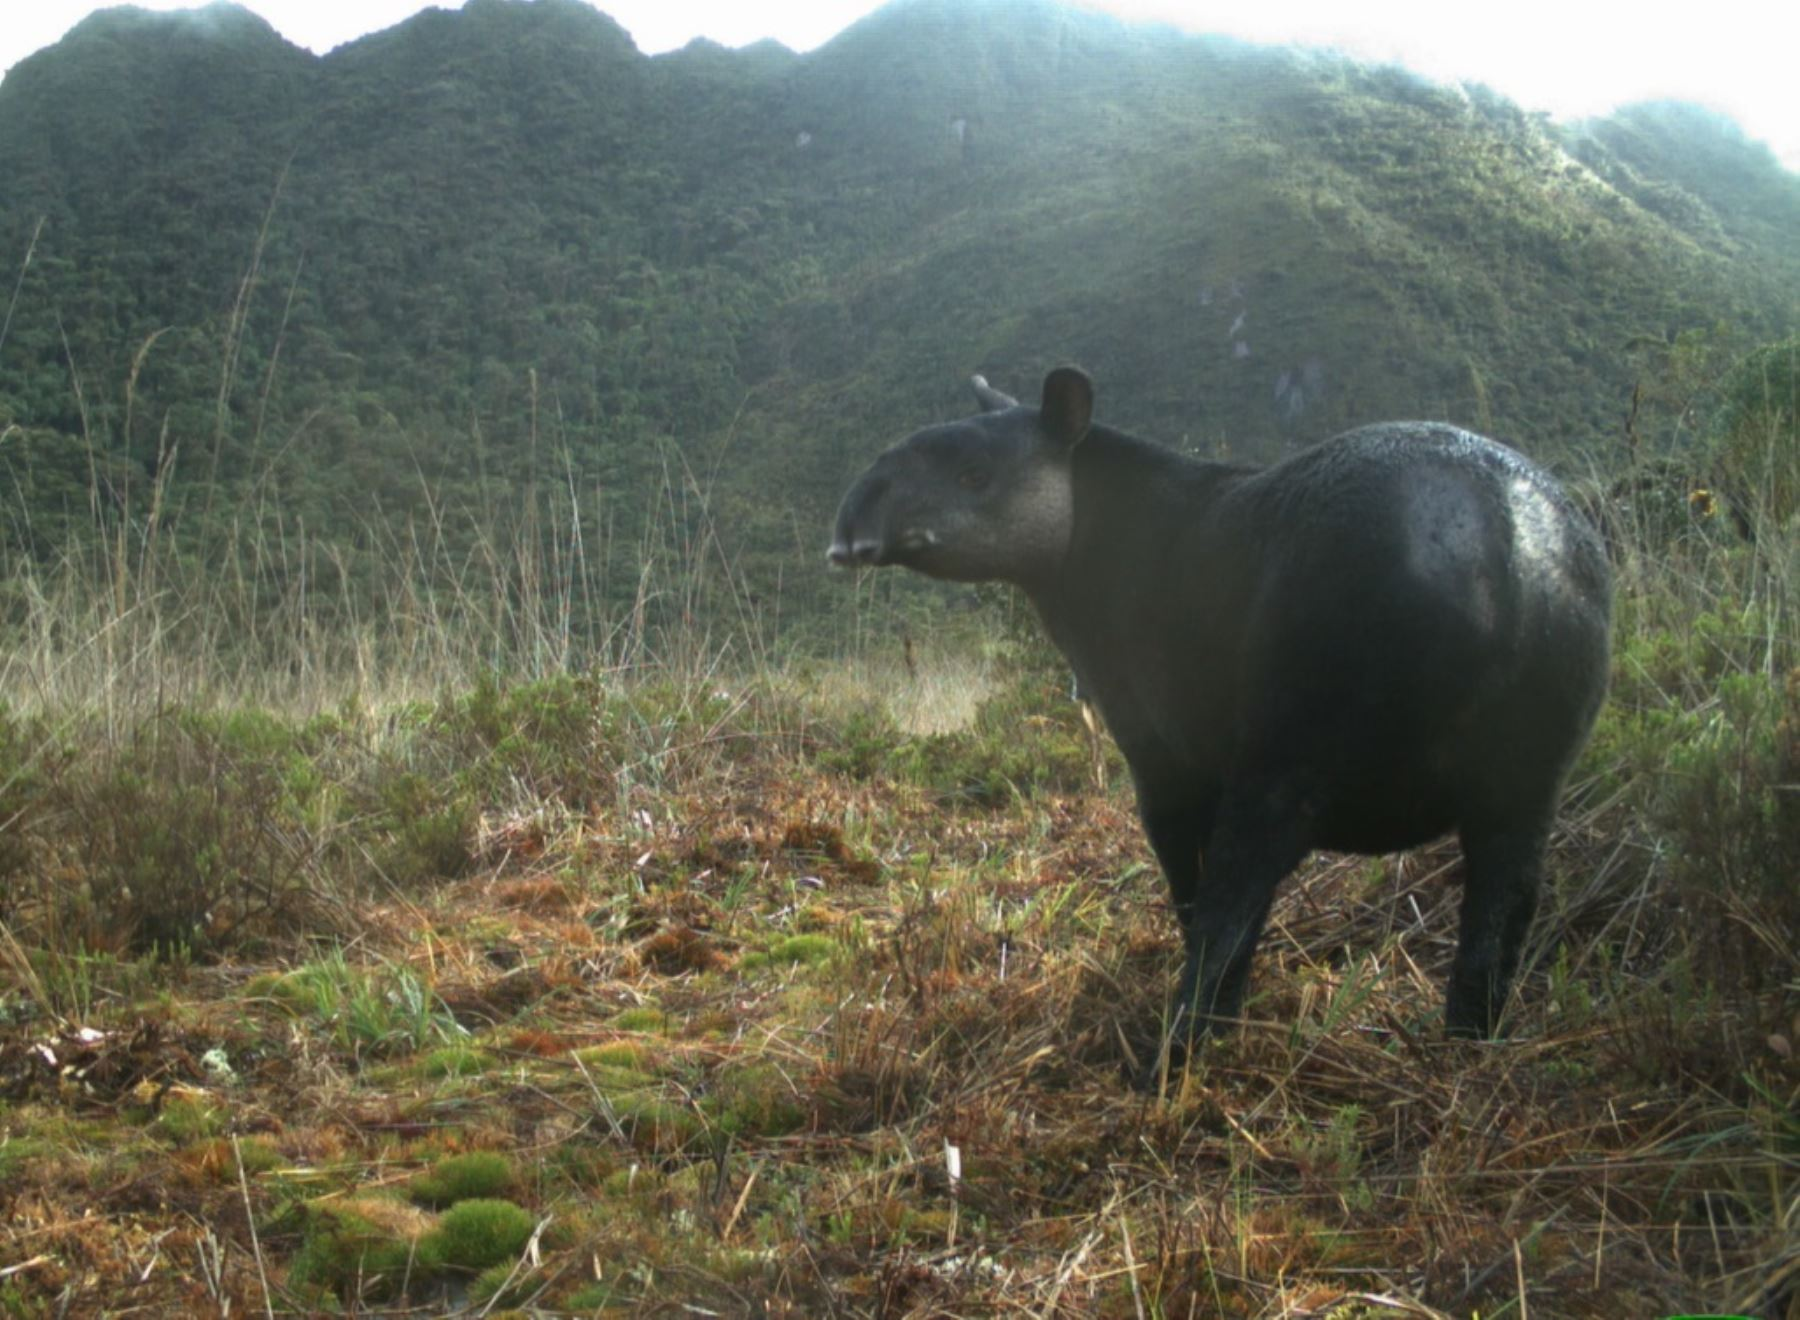 Andean tapir in Pacaipampa Conservation Area. Photo: SBC Peru